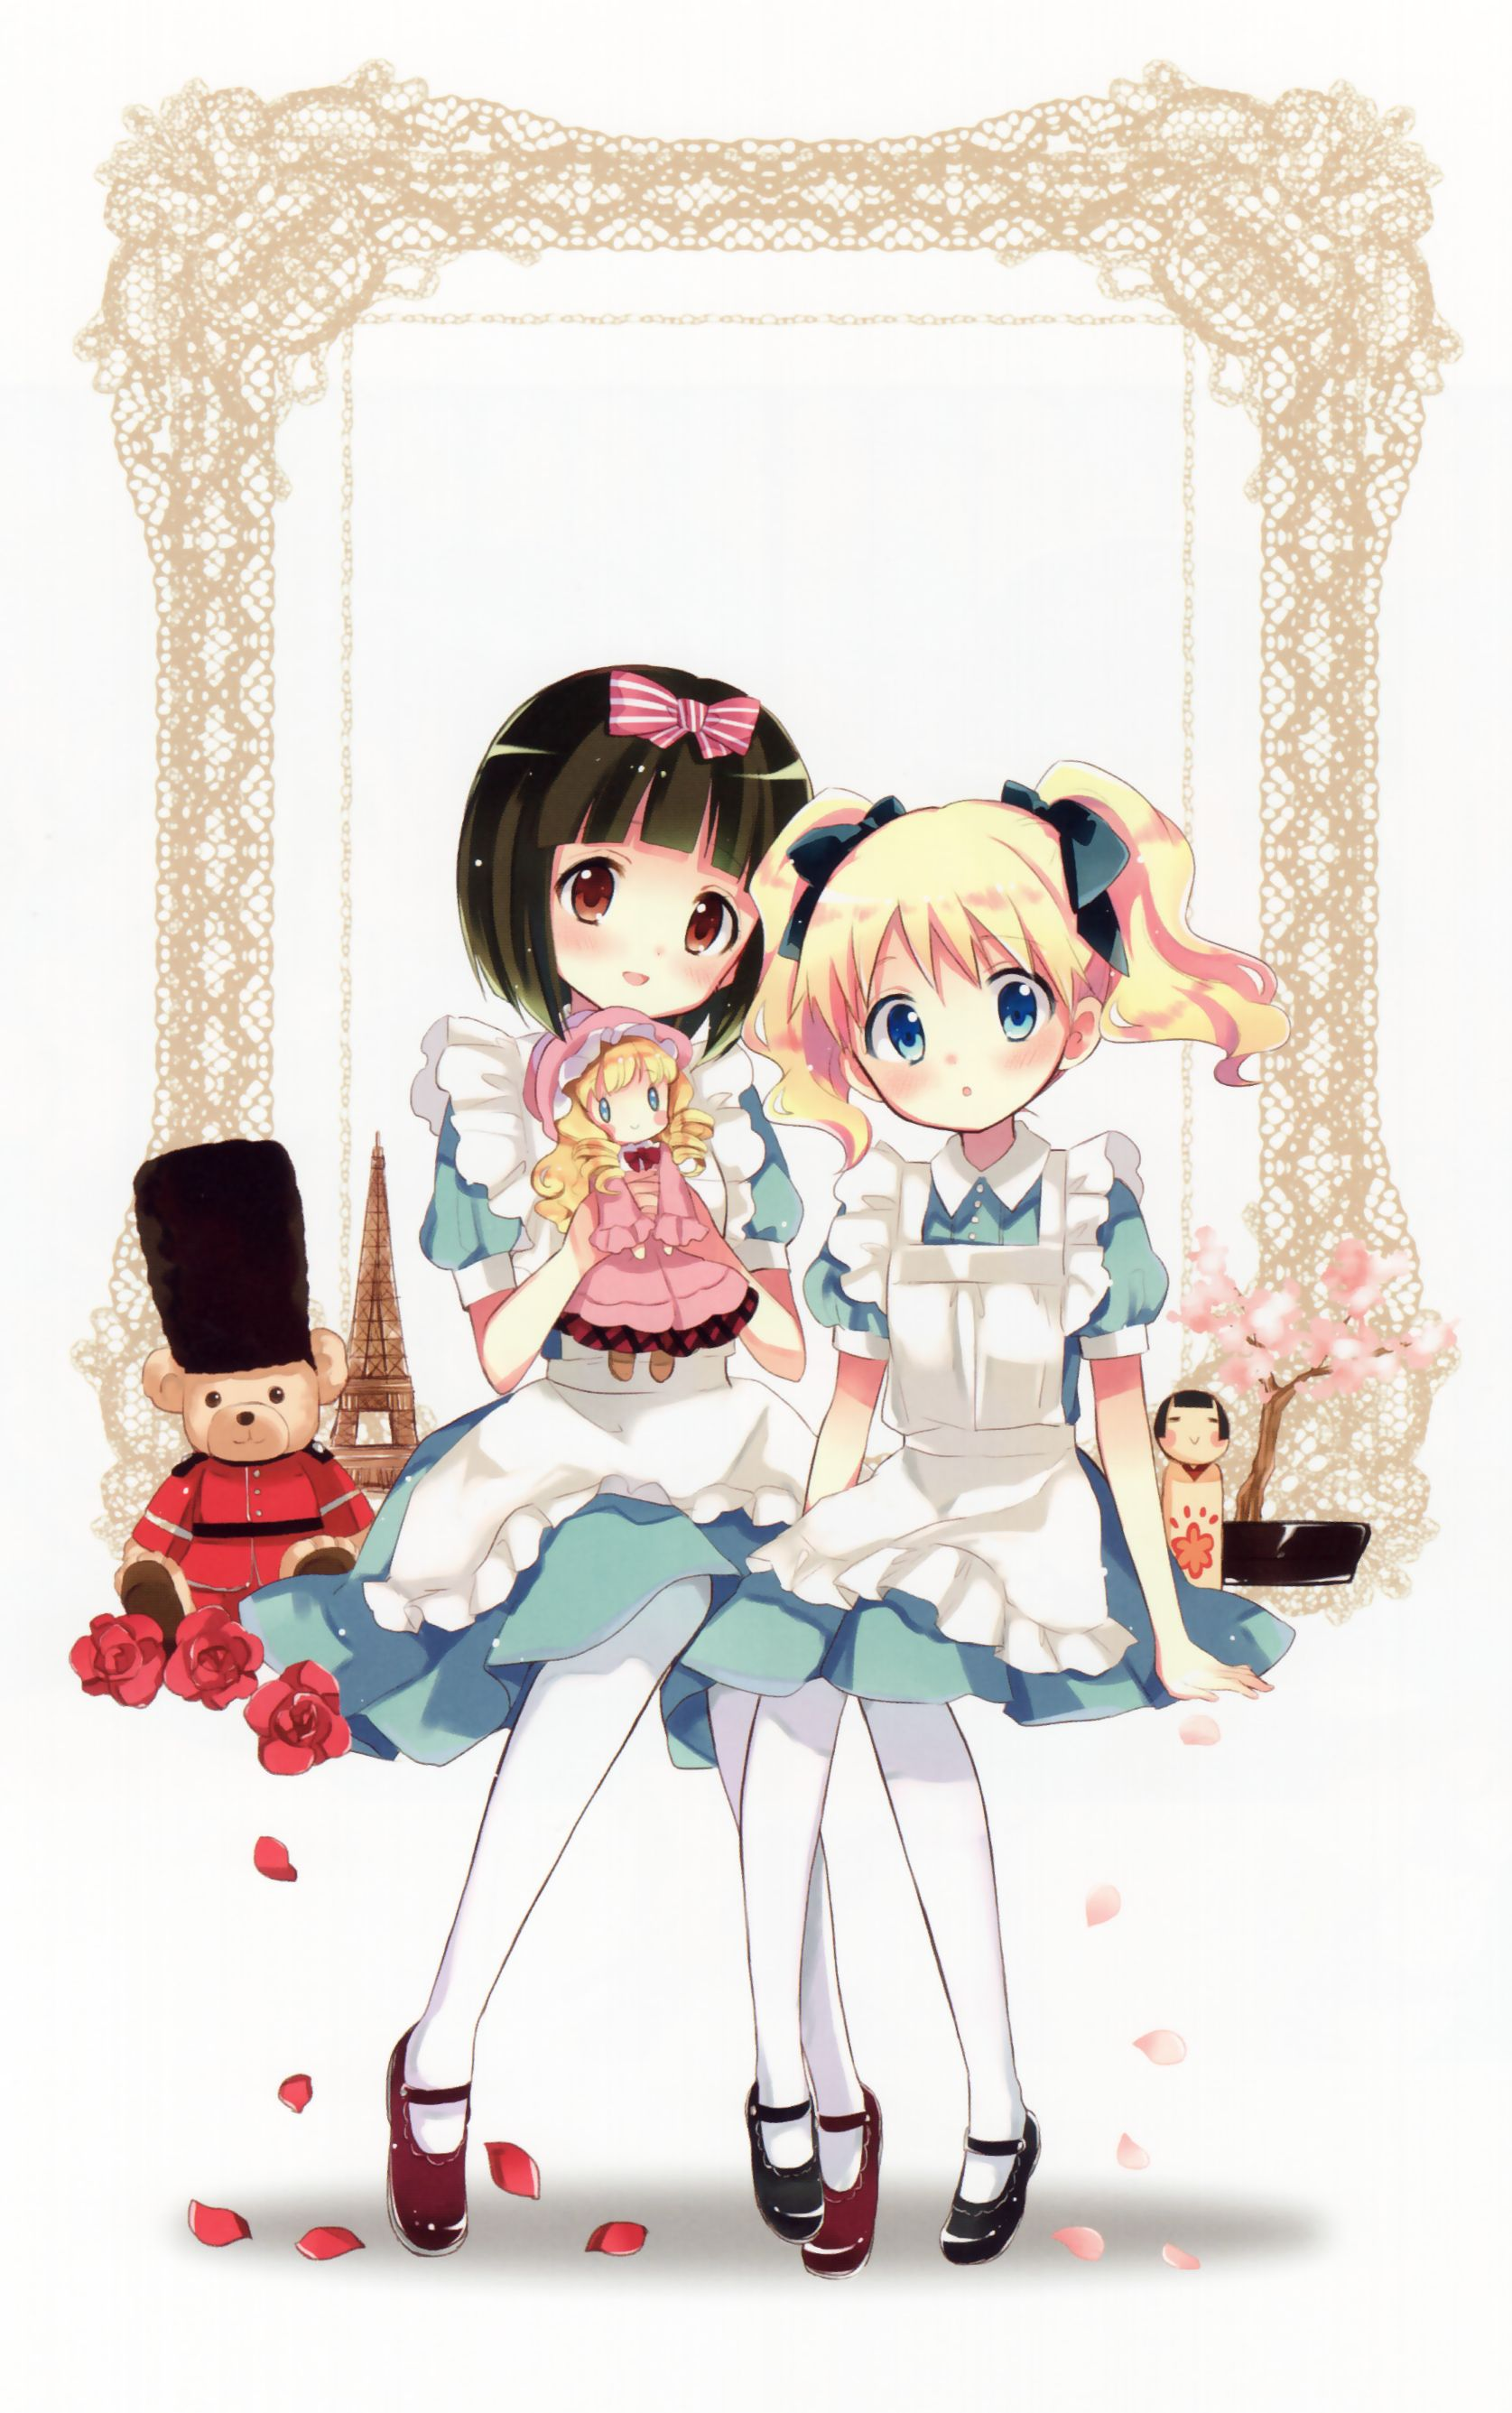 Kiniro Mosaic Alice And Shinobu Art By Hara Yui Zerochan